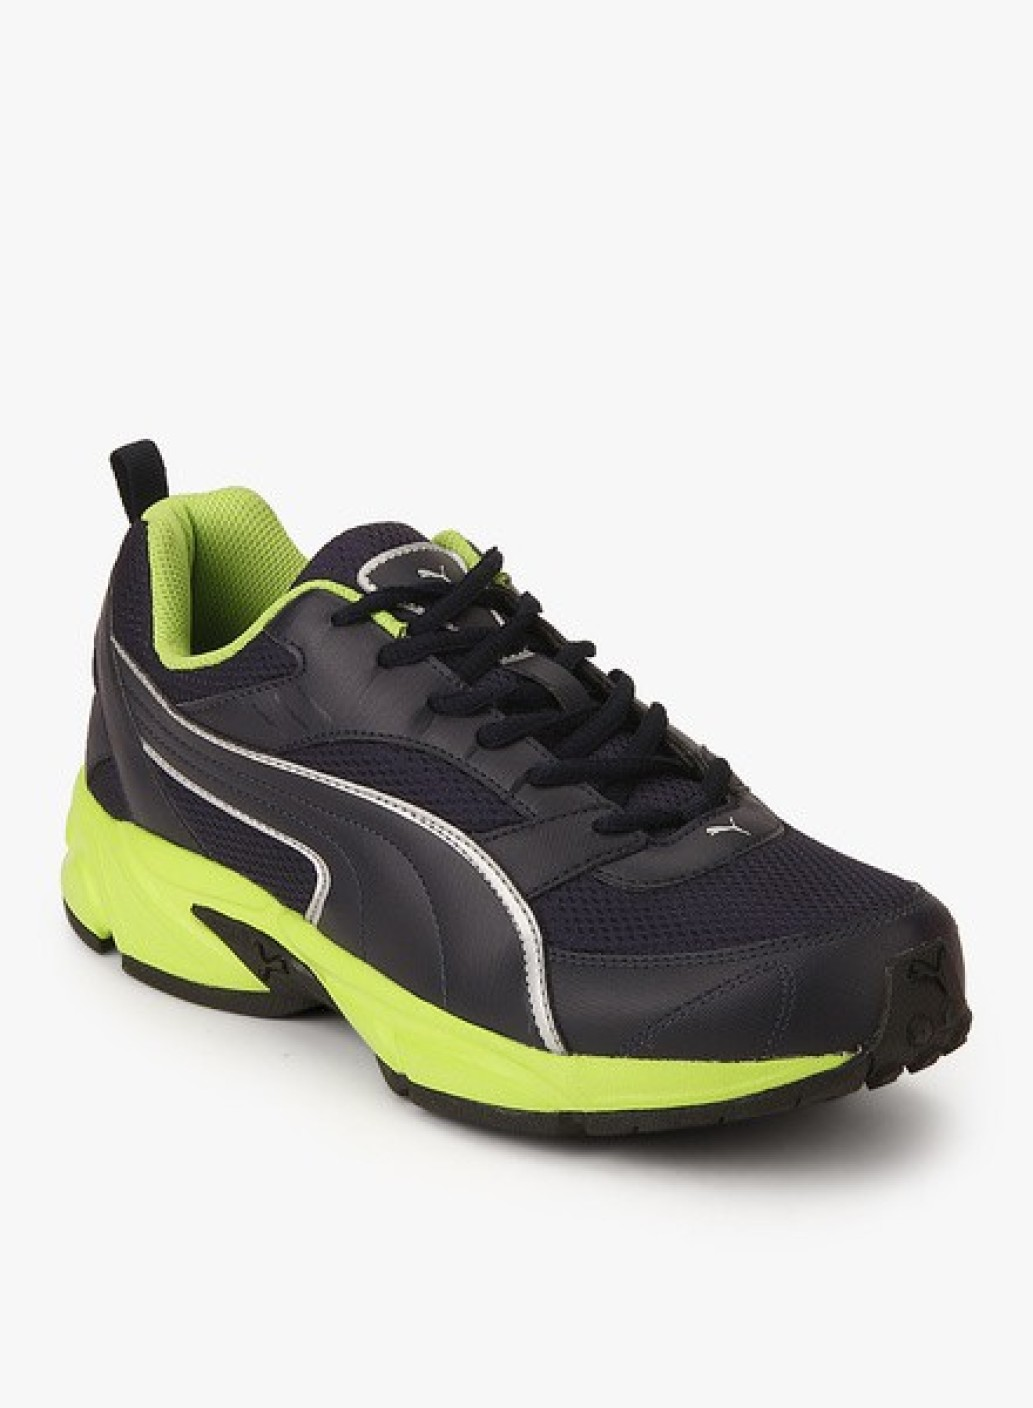 Puma Men S Atom Fashion Iii Dp Running Shoes Price